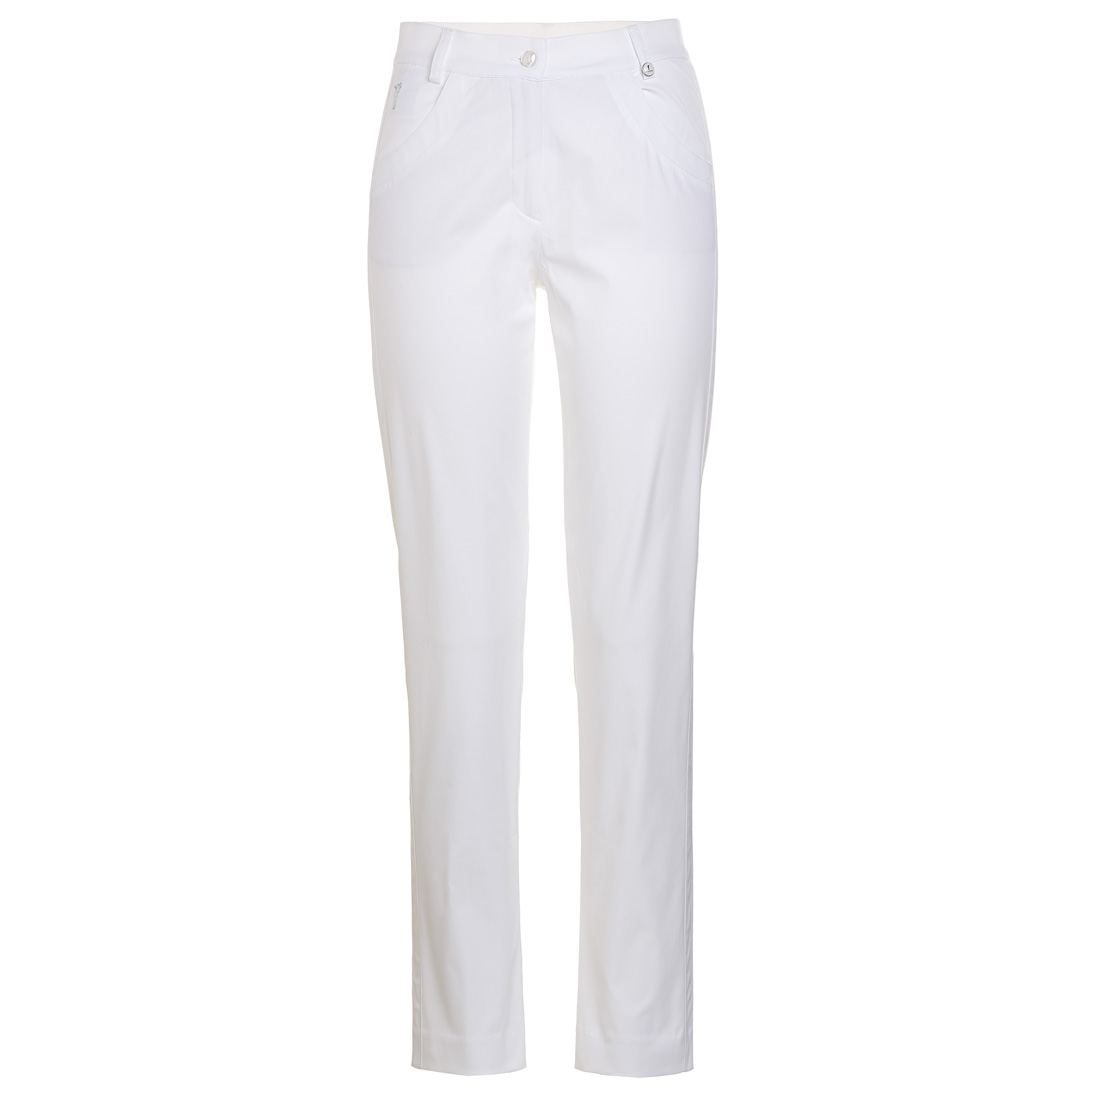 Glänzende Damen Techno Stretch Hose